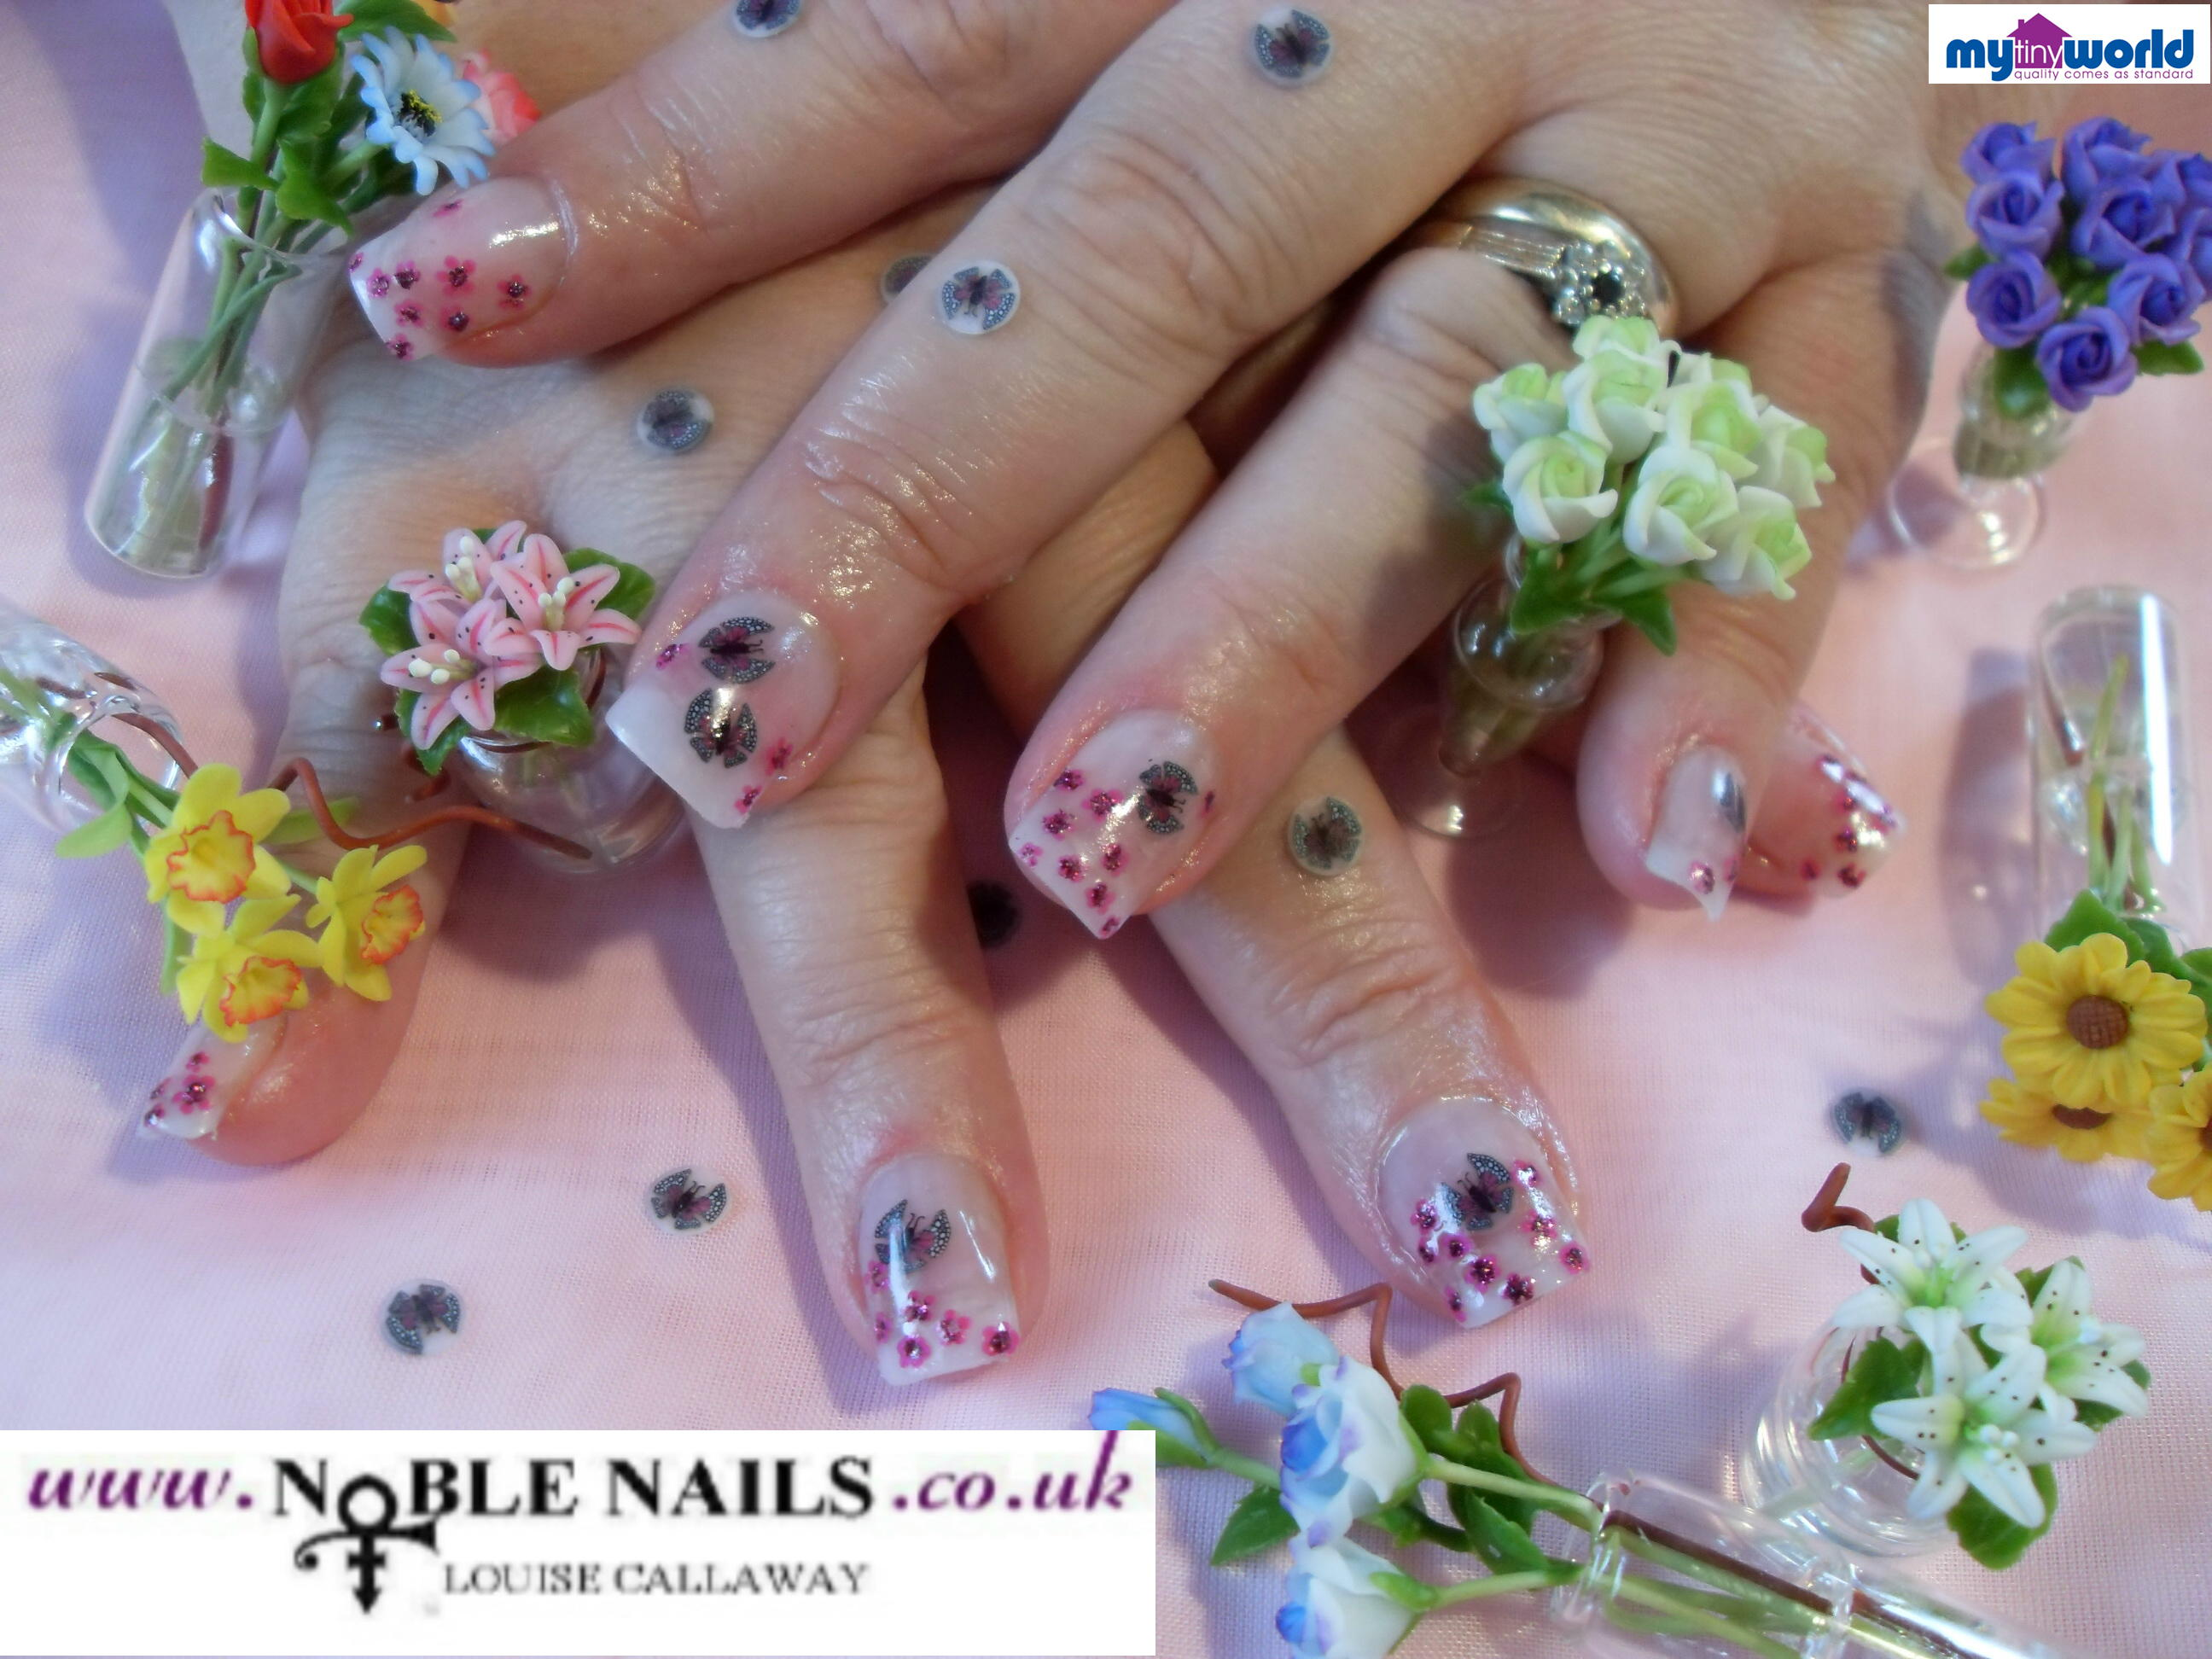 LOUISE CALLAWAY - LOUISE CALLAWAY @ NOBLE NAILS